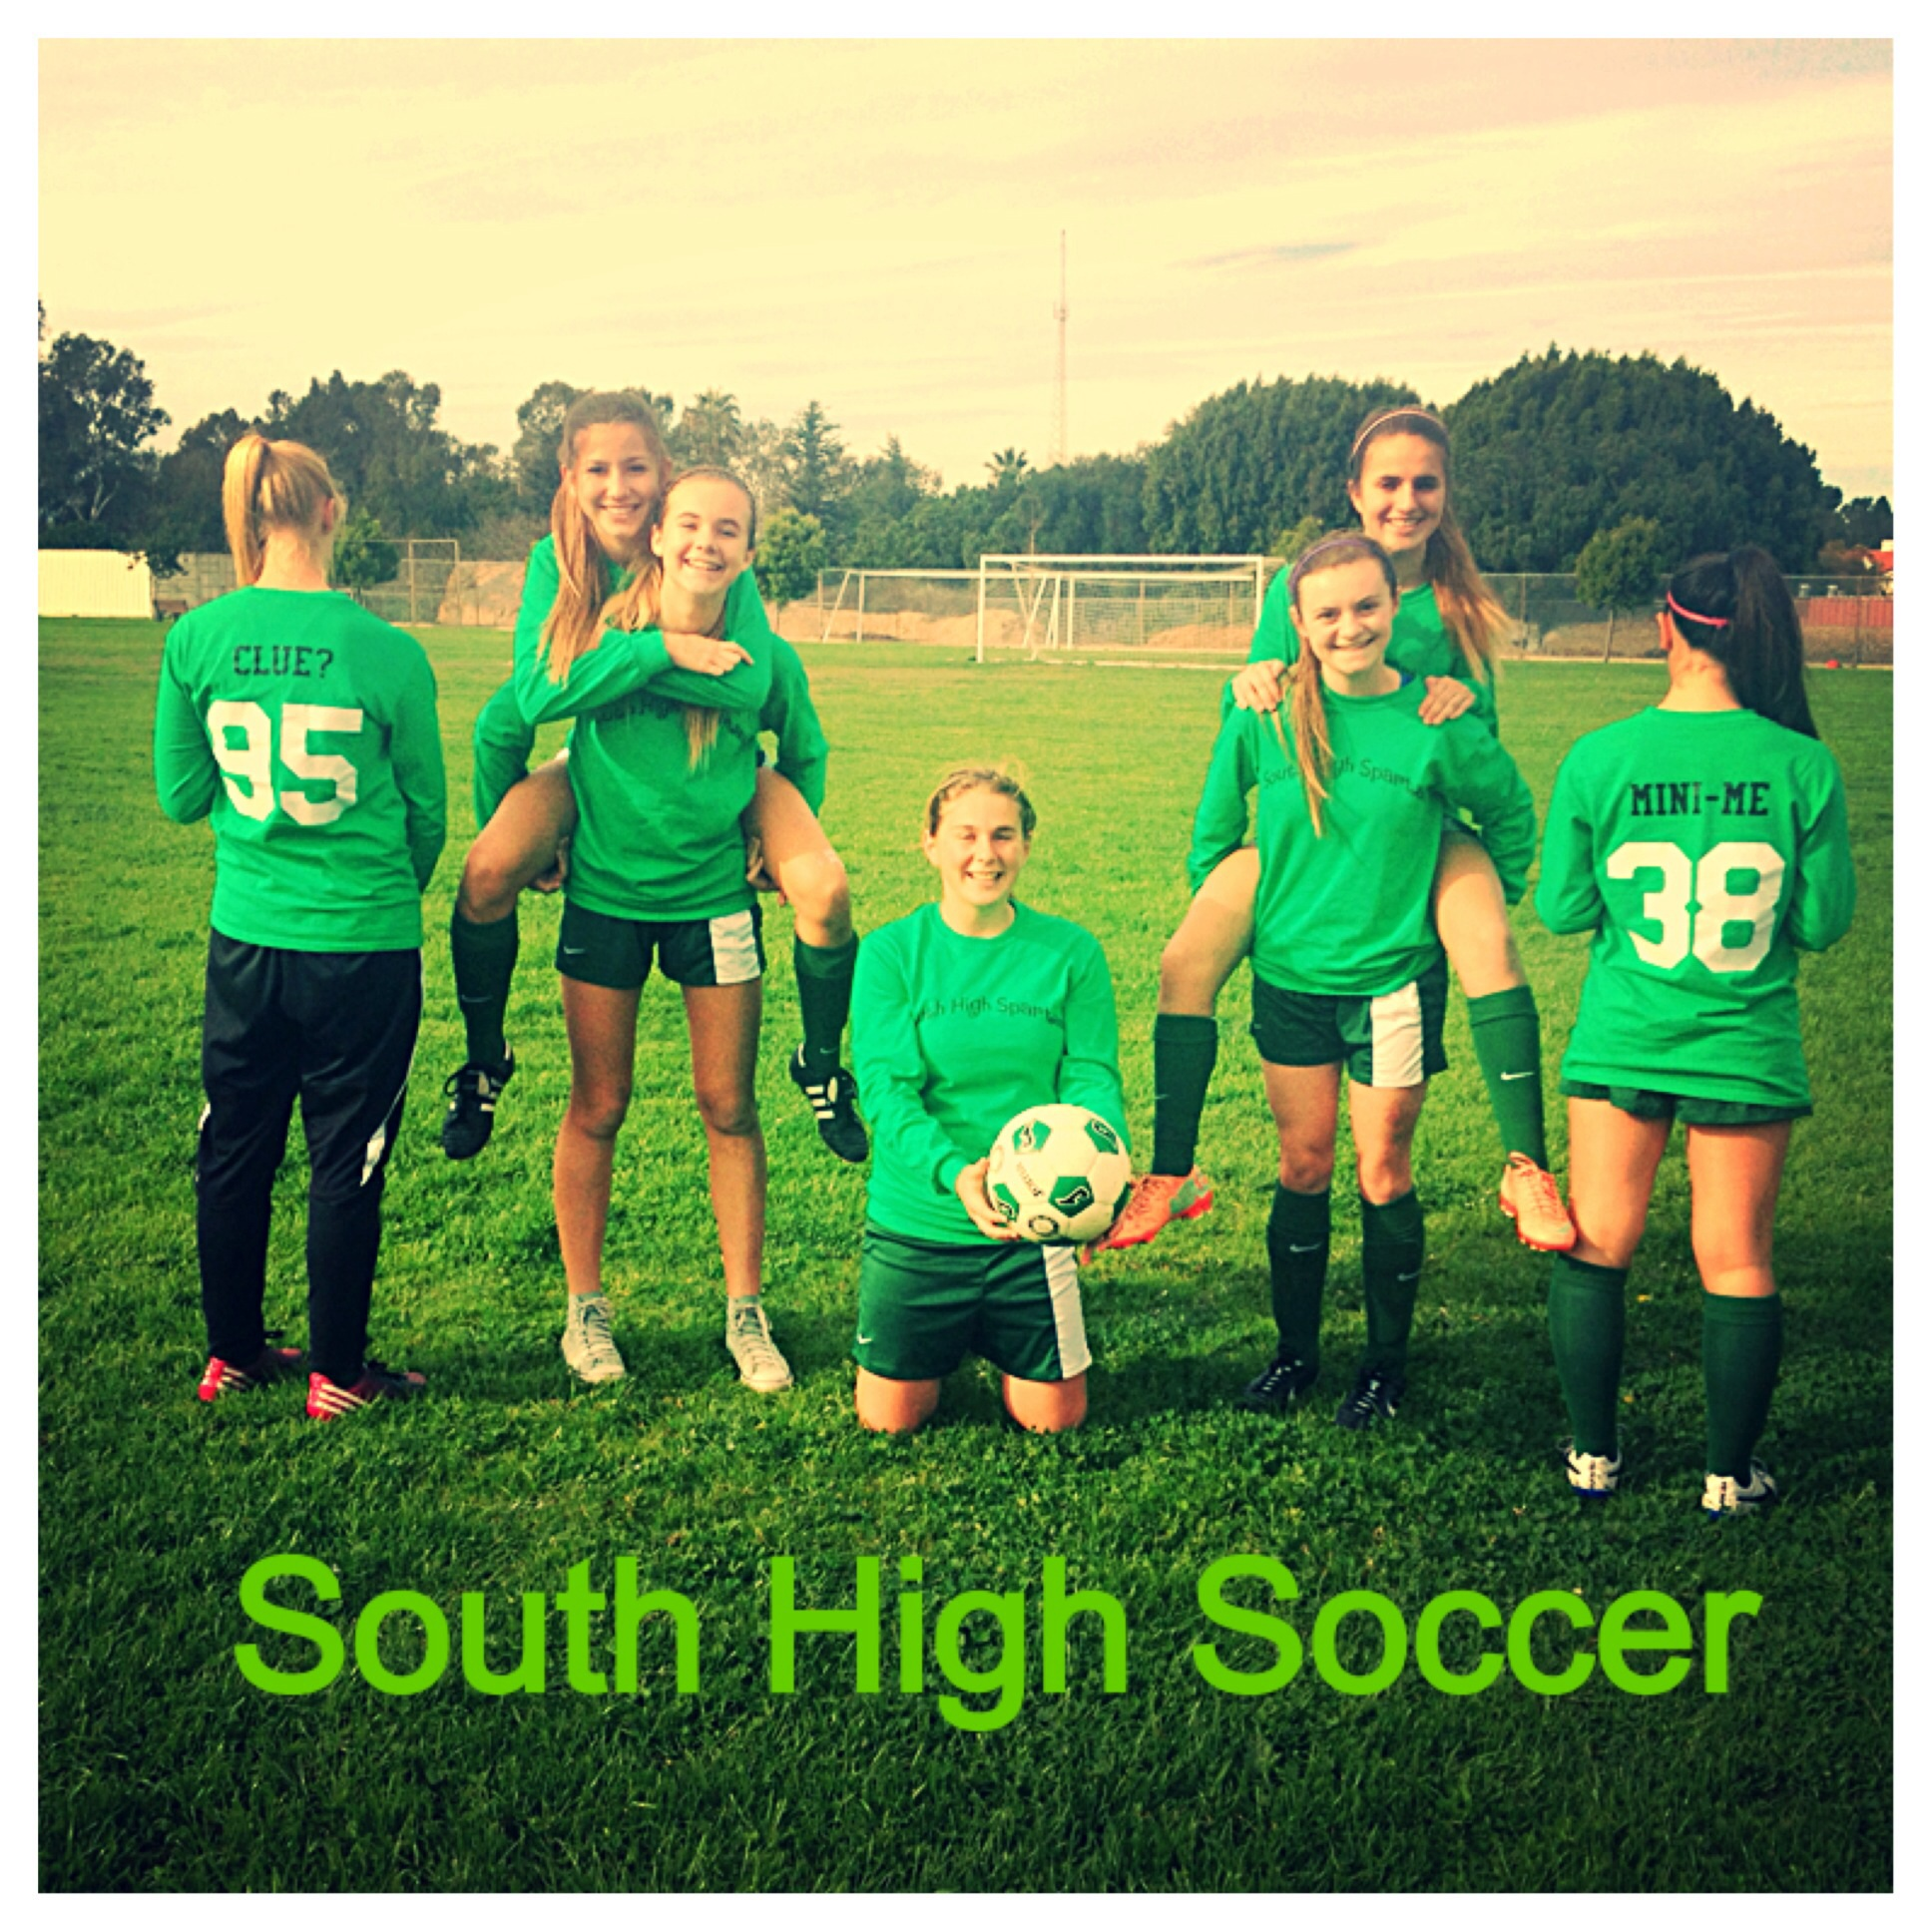 south high soccer t shirt photo